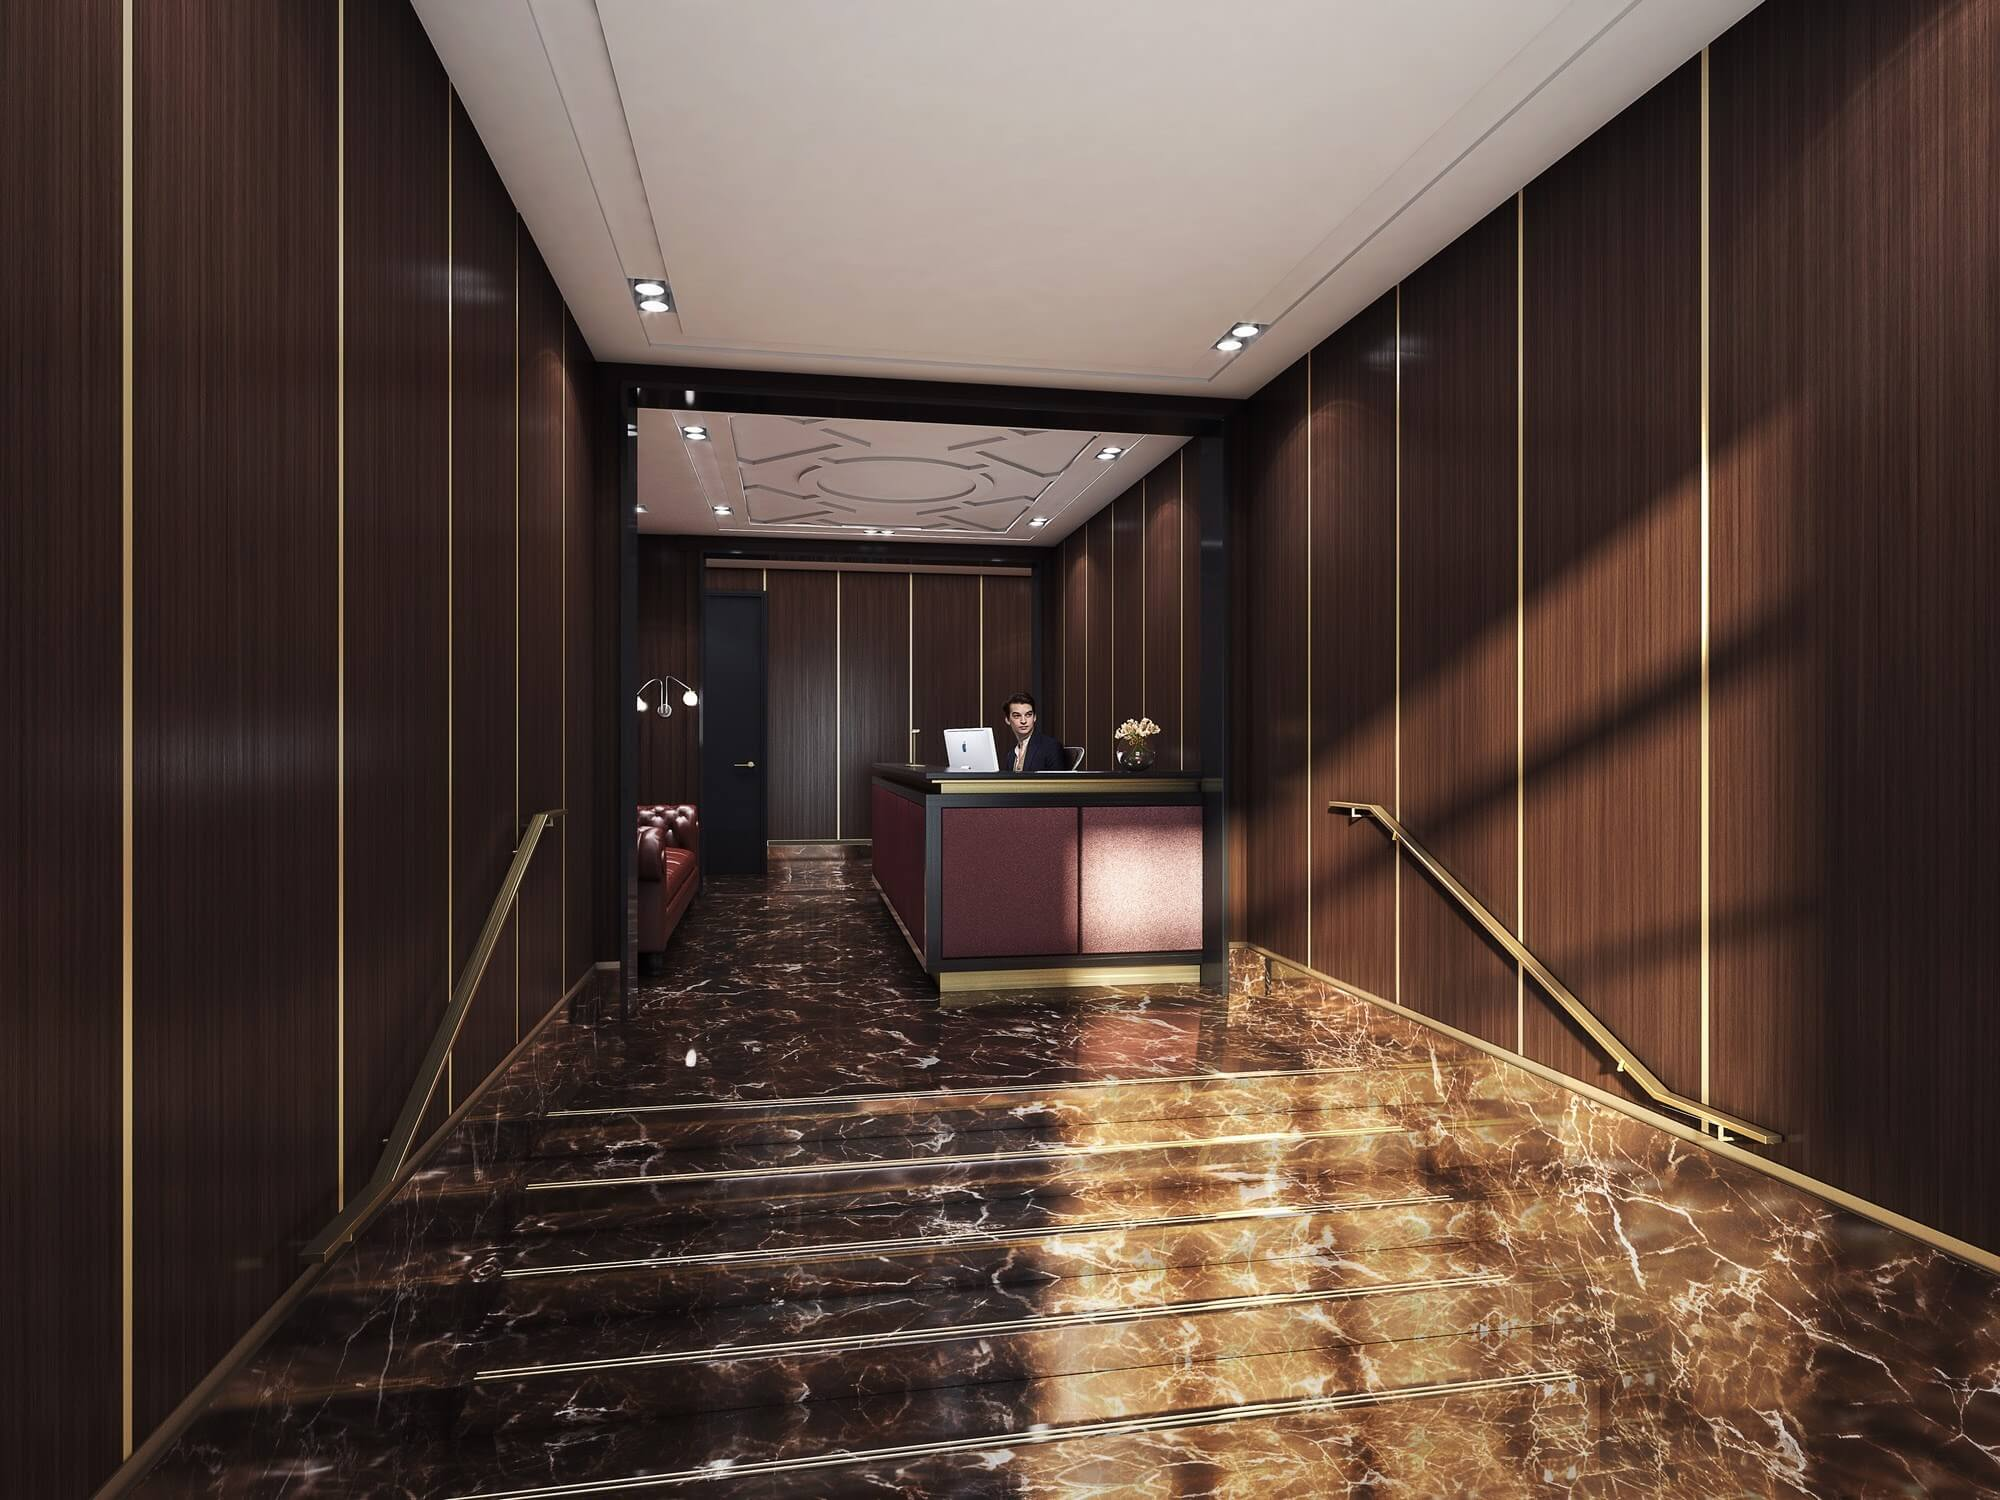 WP001-29-R02-Great-Peter-Street-Entrance-Lobby-C06